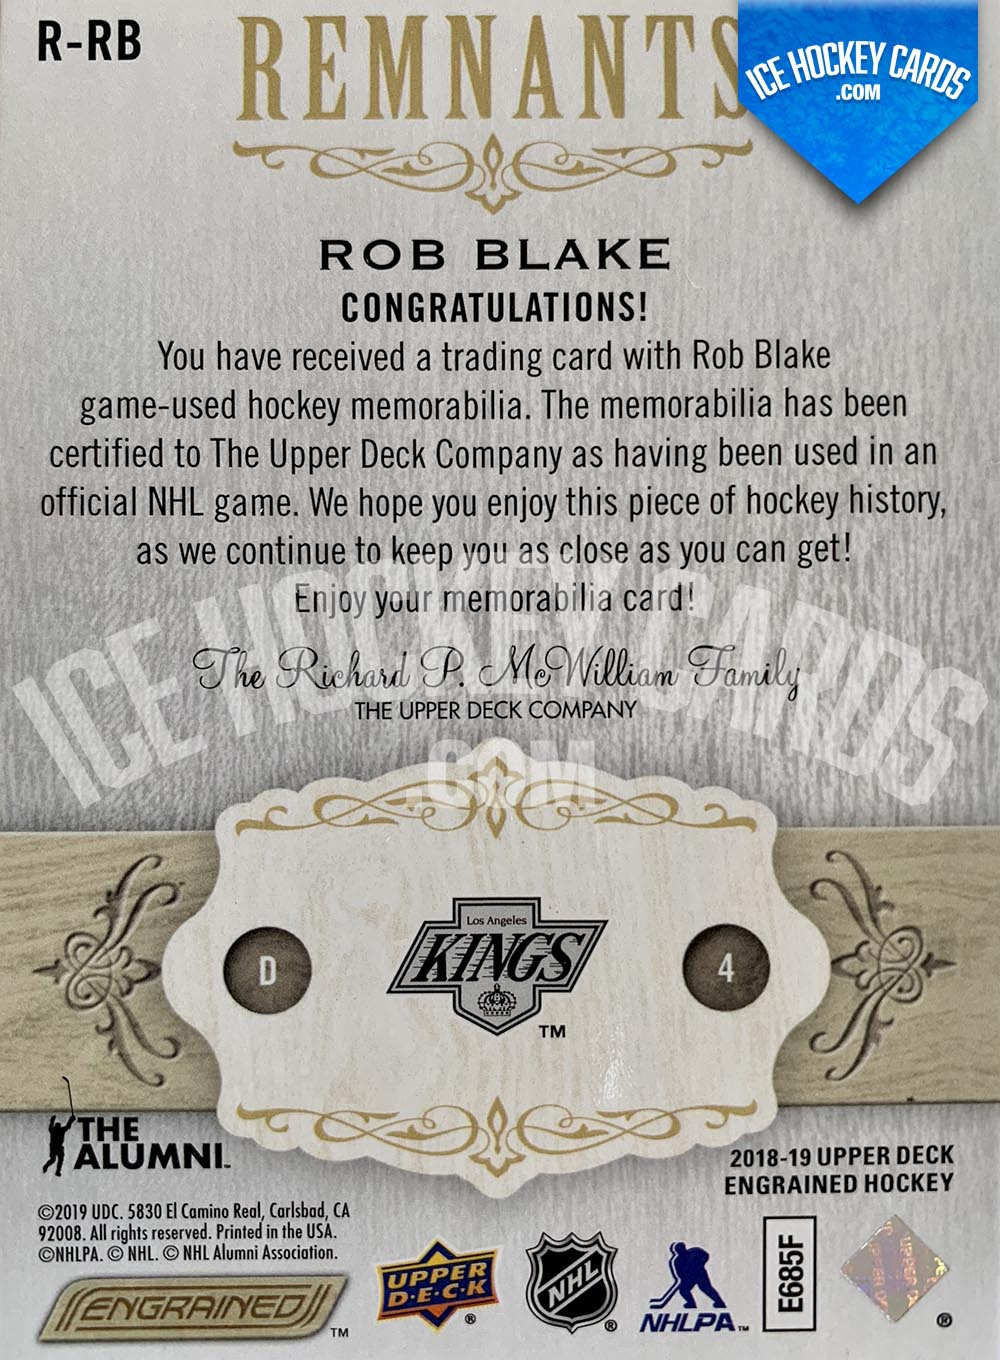 Upper Deck - Engrained 2018-19 - Rob Blake The Alumni Remnants Sticks Game-Used # to 100 back